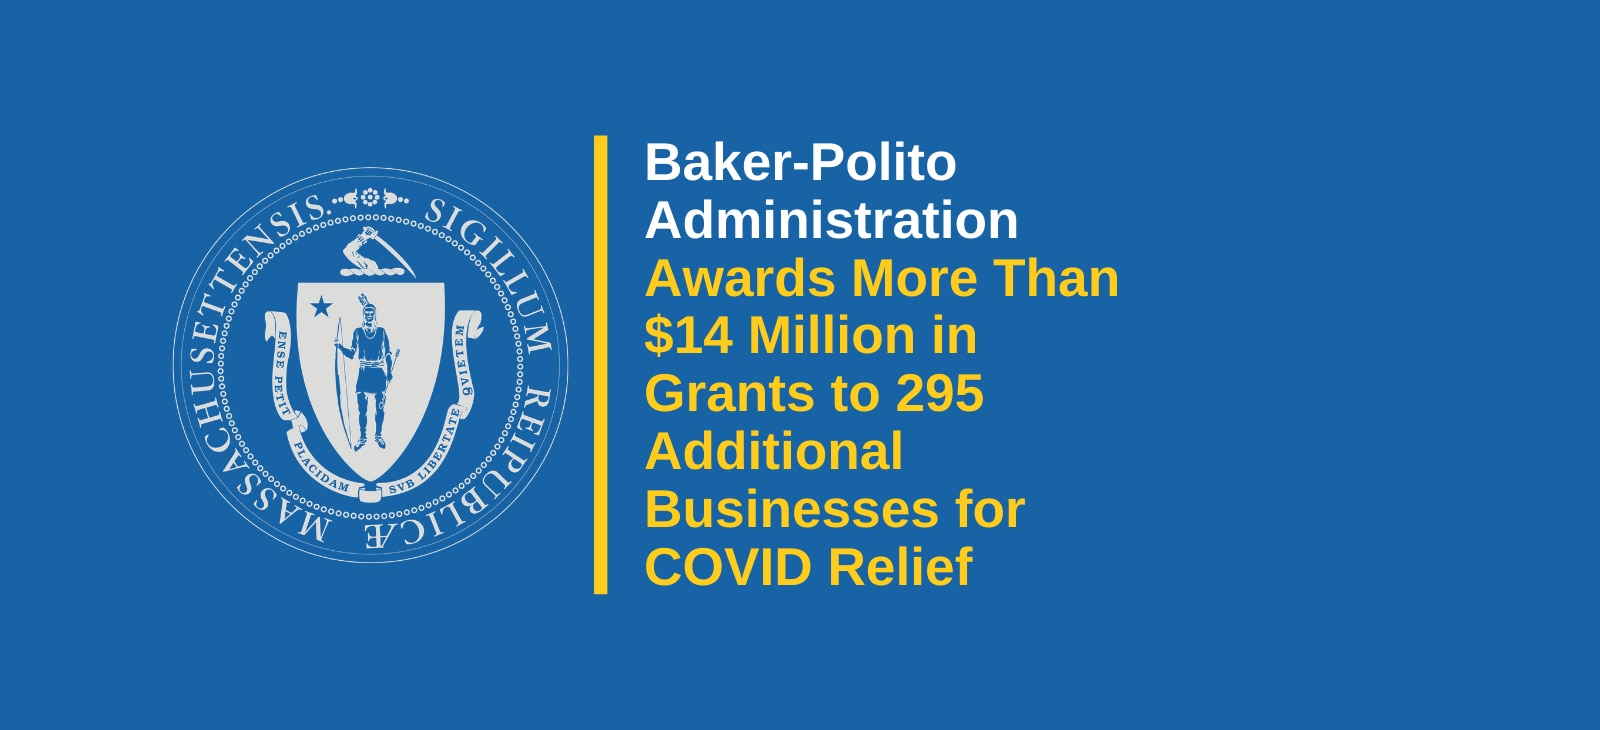 Baker-Polito Administration Awards More Than $14 Million in Grants to 295 Additional Businesses for COVID Relief